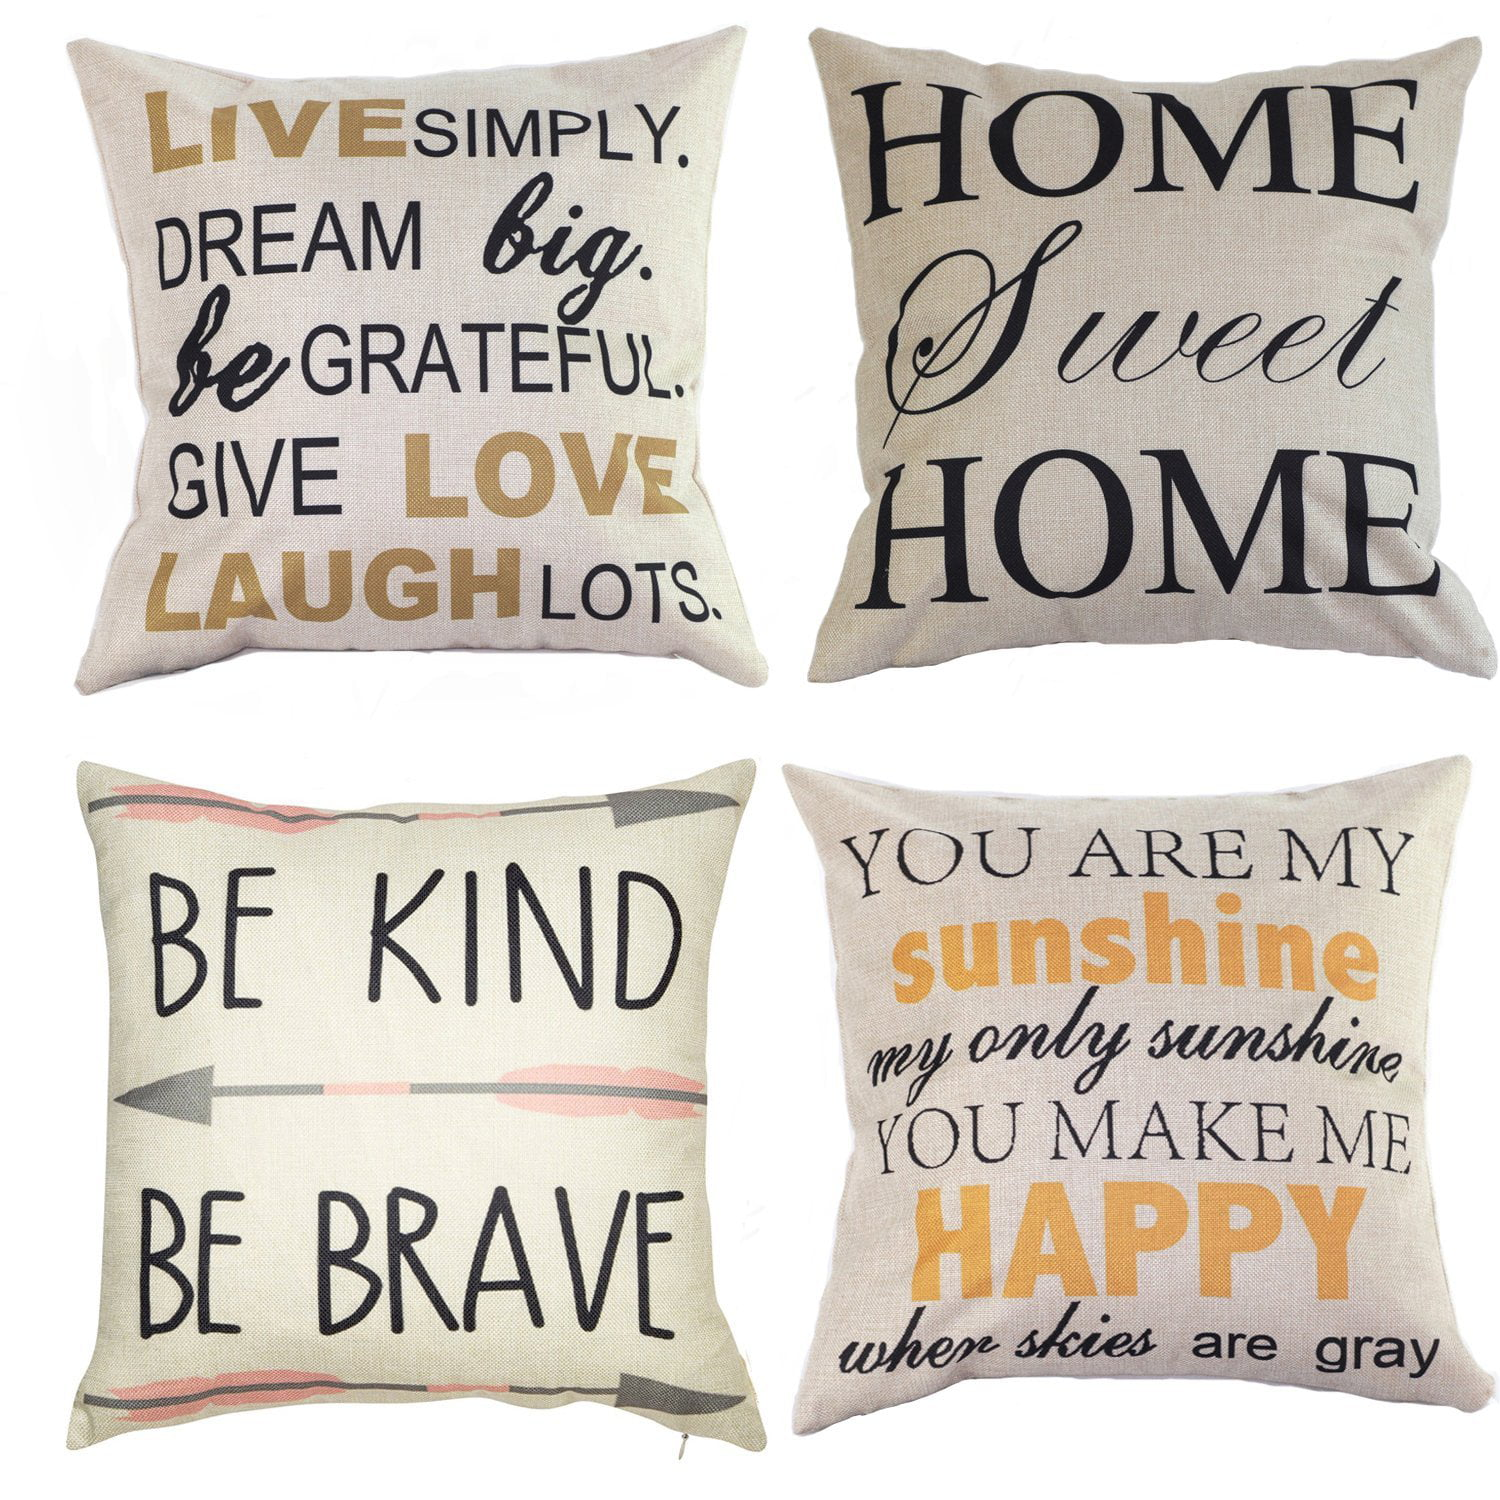 Coolmade Decorative Quote Words Pillow Case Cotton Linen Square Decorative Throw Pillow Covers Cushion Cover 18 X 18 Be Kind Be Brave Home Sweet Home Love In Simple Words Walmart Com Walmart Com